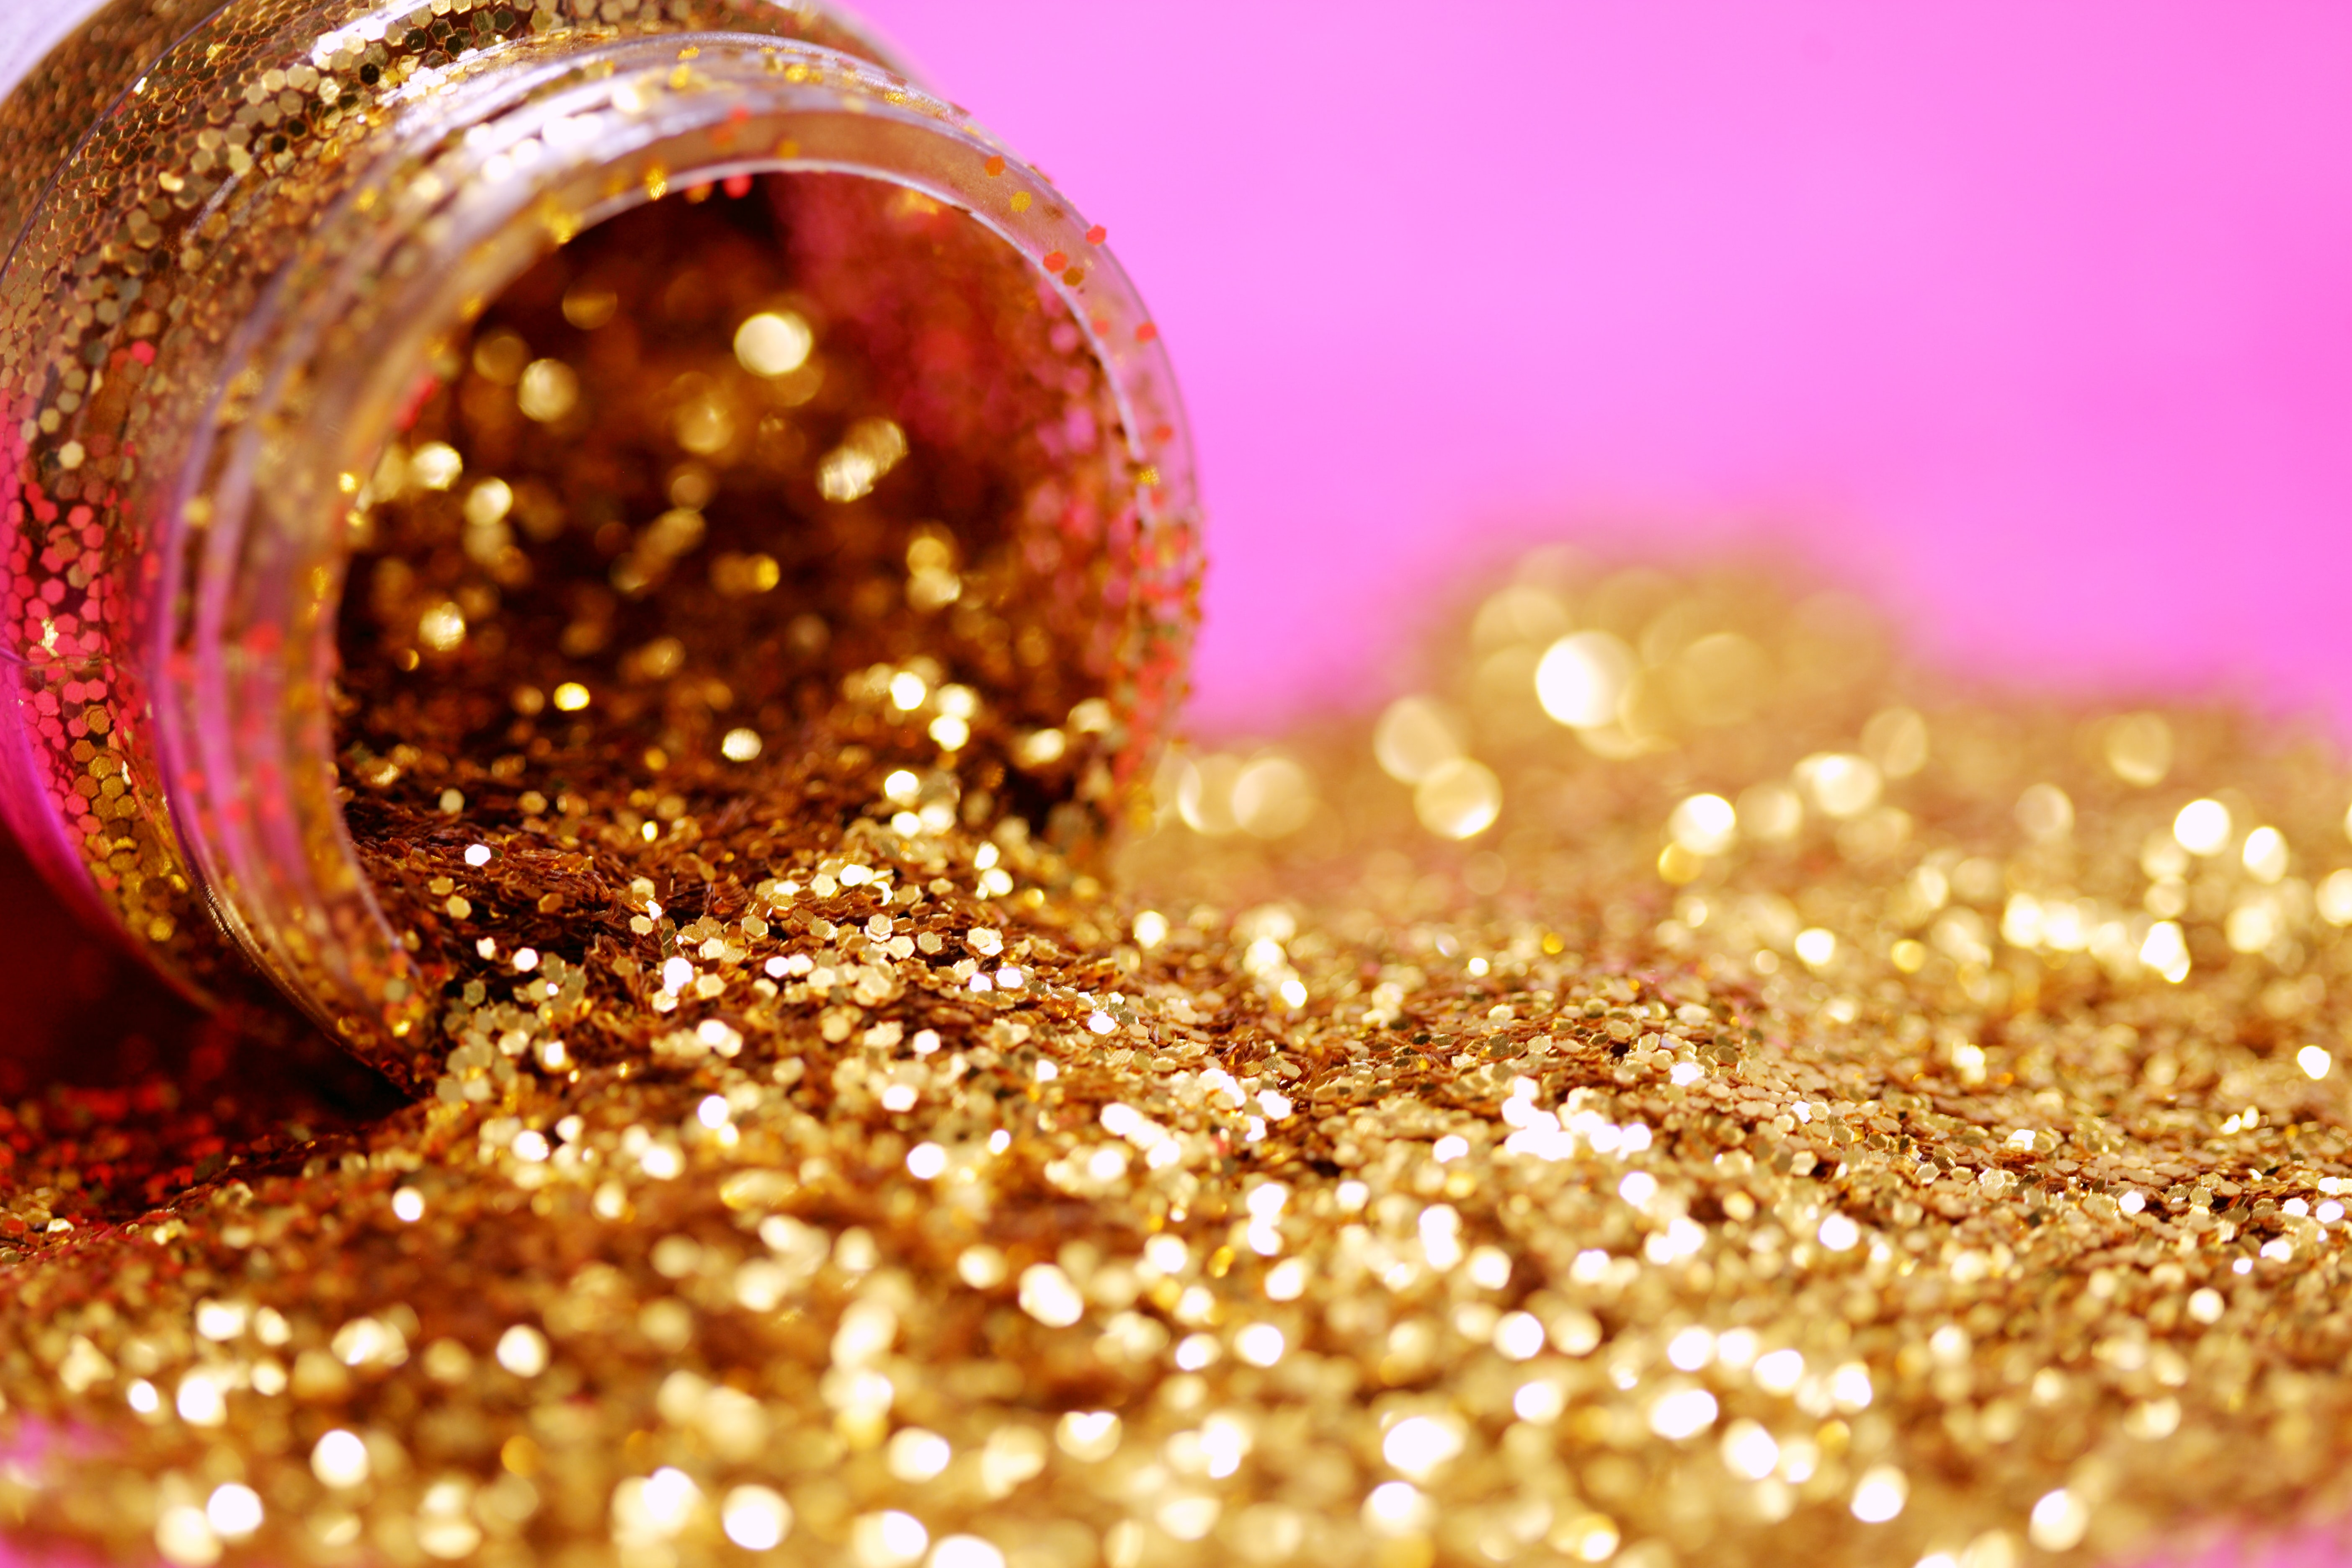 Gold sparkly glittery tumbling out of a jar on a shocking pink background